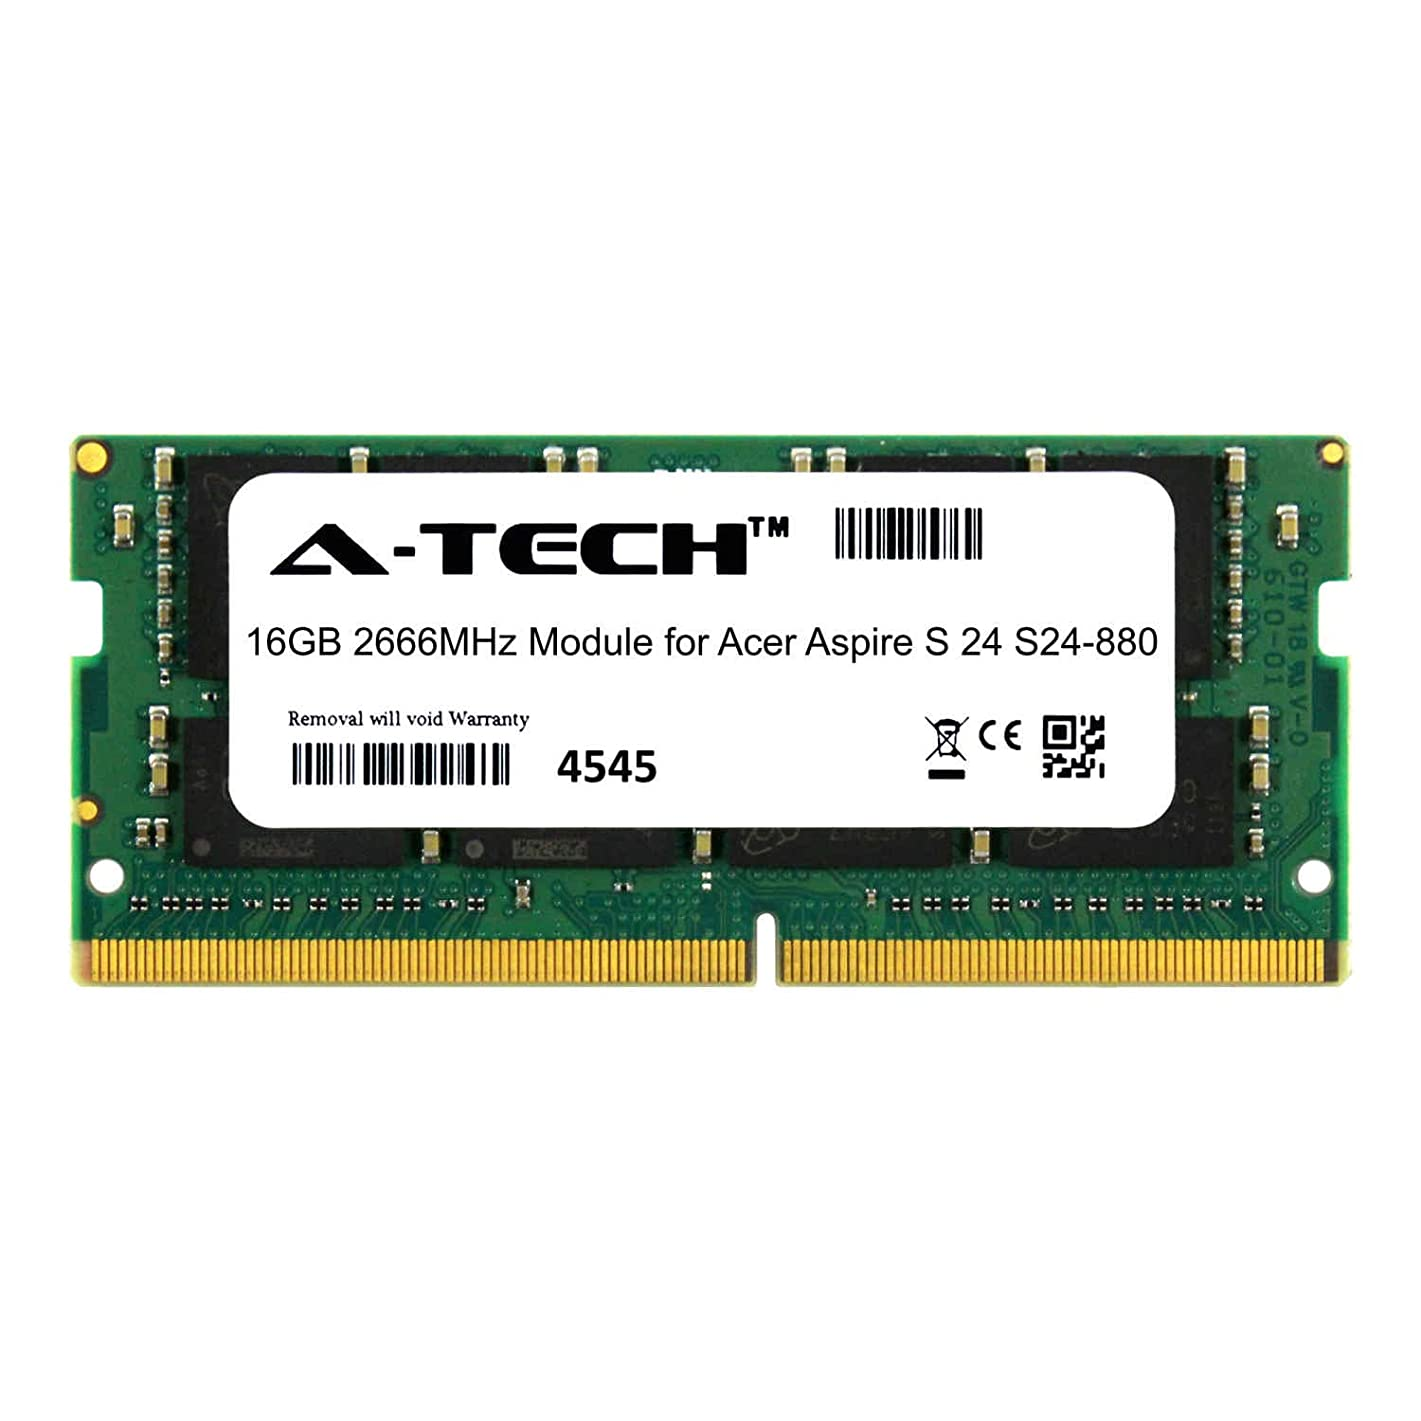 A-Tech 16GB Module for Acer Aspire S 24 S24-880 Laptop & Notebook Compatible DDR4 2666Mhz Memory Ram (ATMS267081A25832X1)